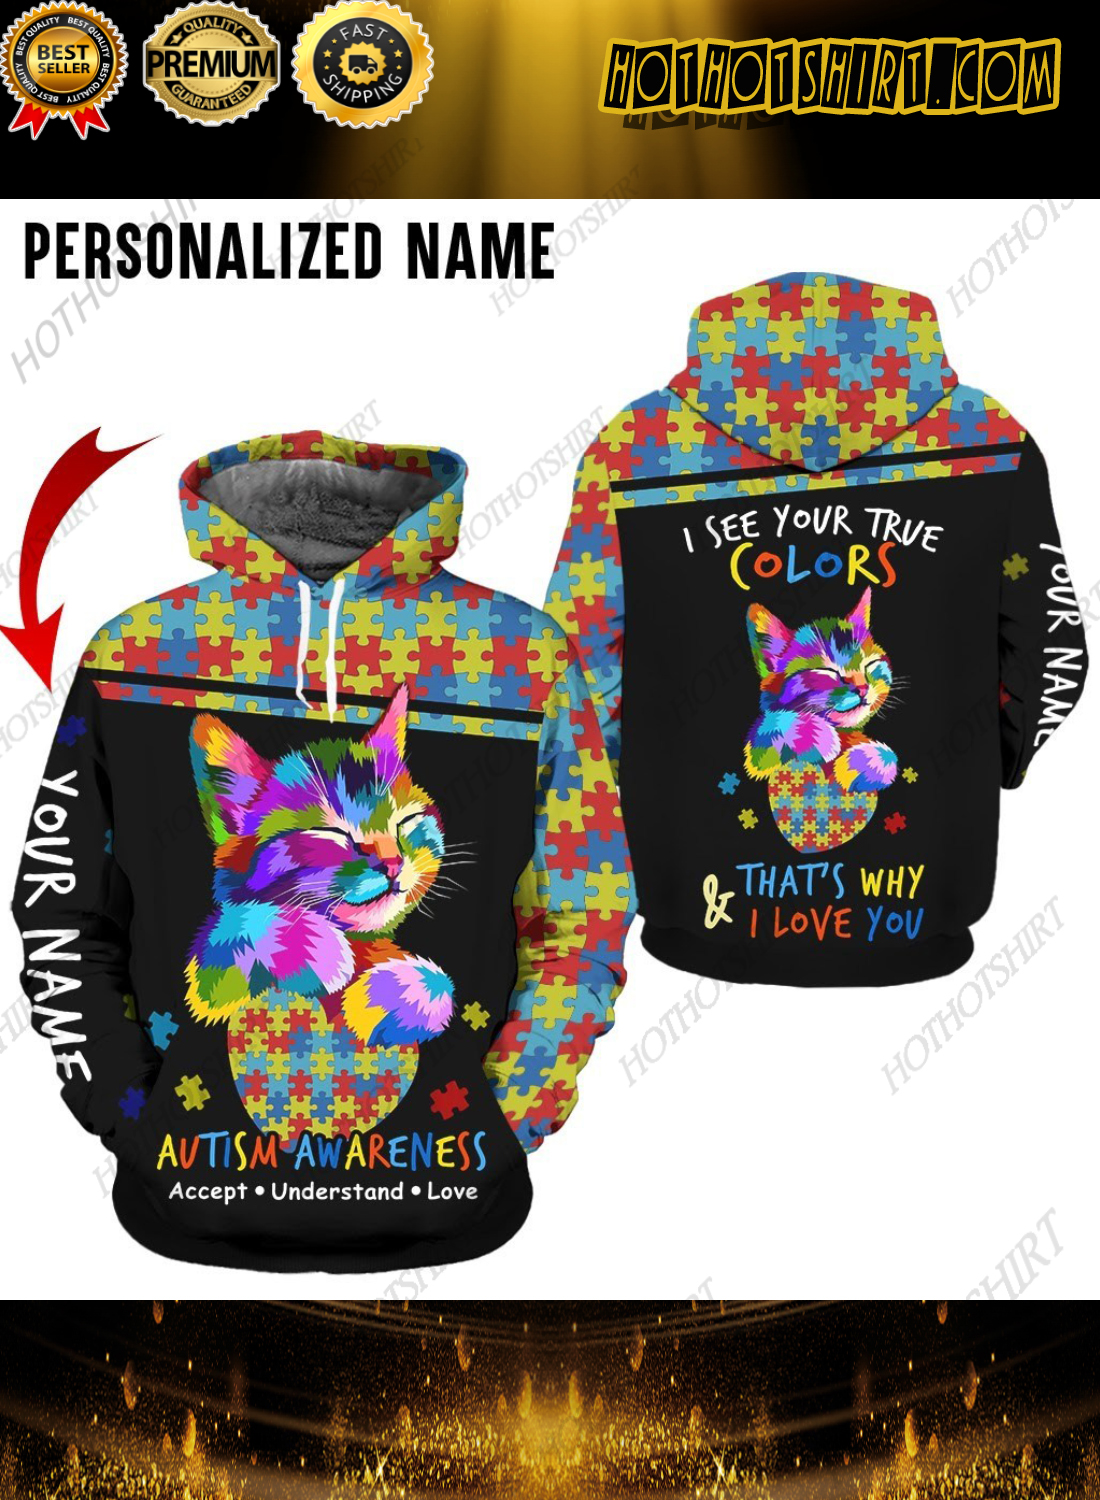 Personalized Name Autism Awareness Accept Understand Love 3D Shirts